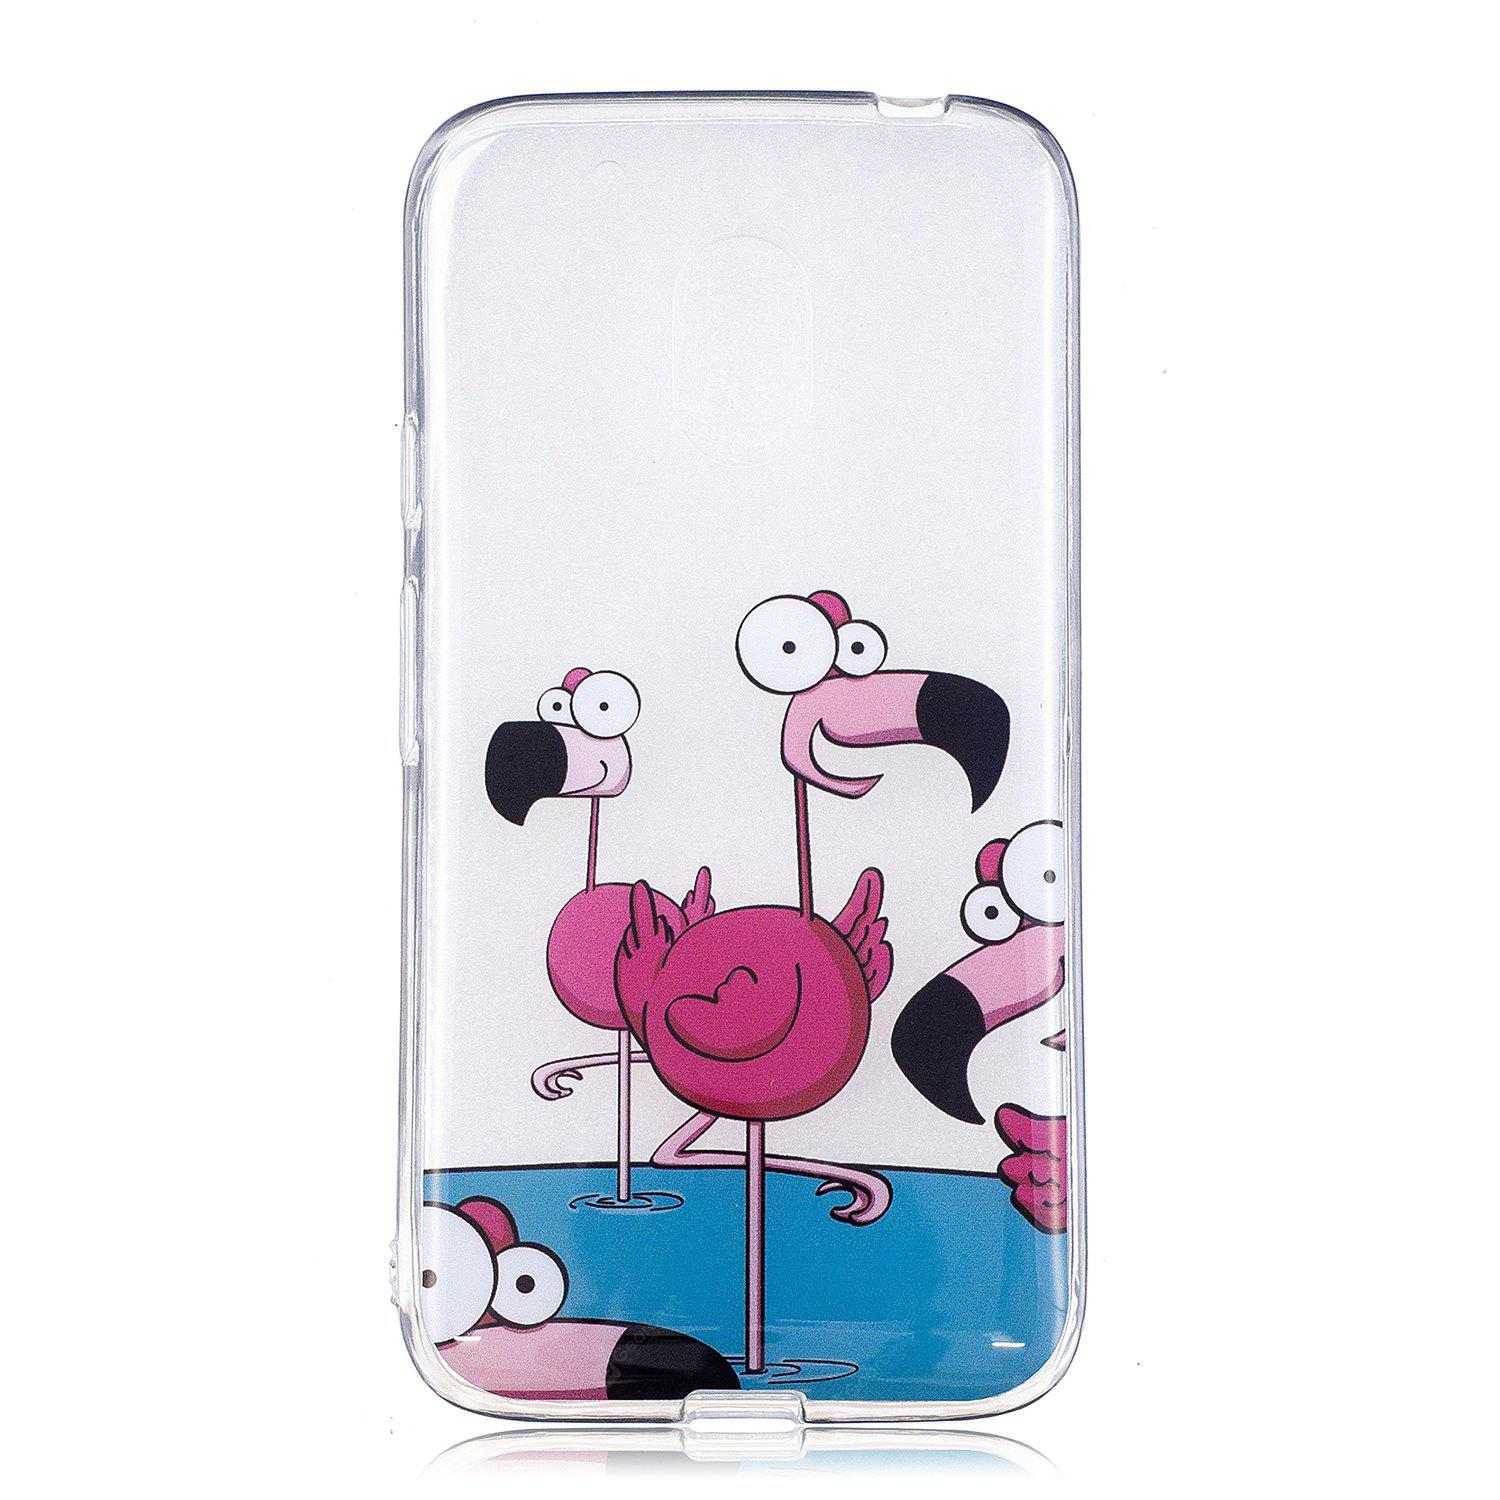 Cartoon Pattern Phone Cover Case for Motorola Moto G4 Play